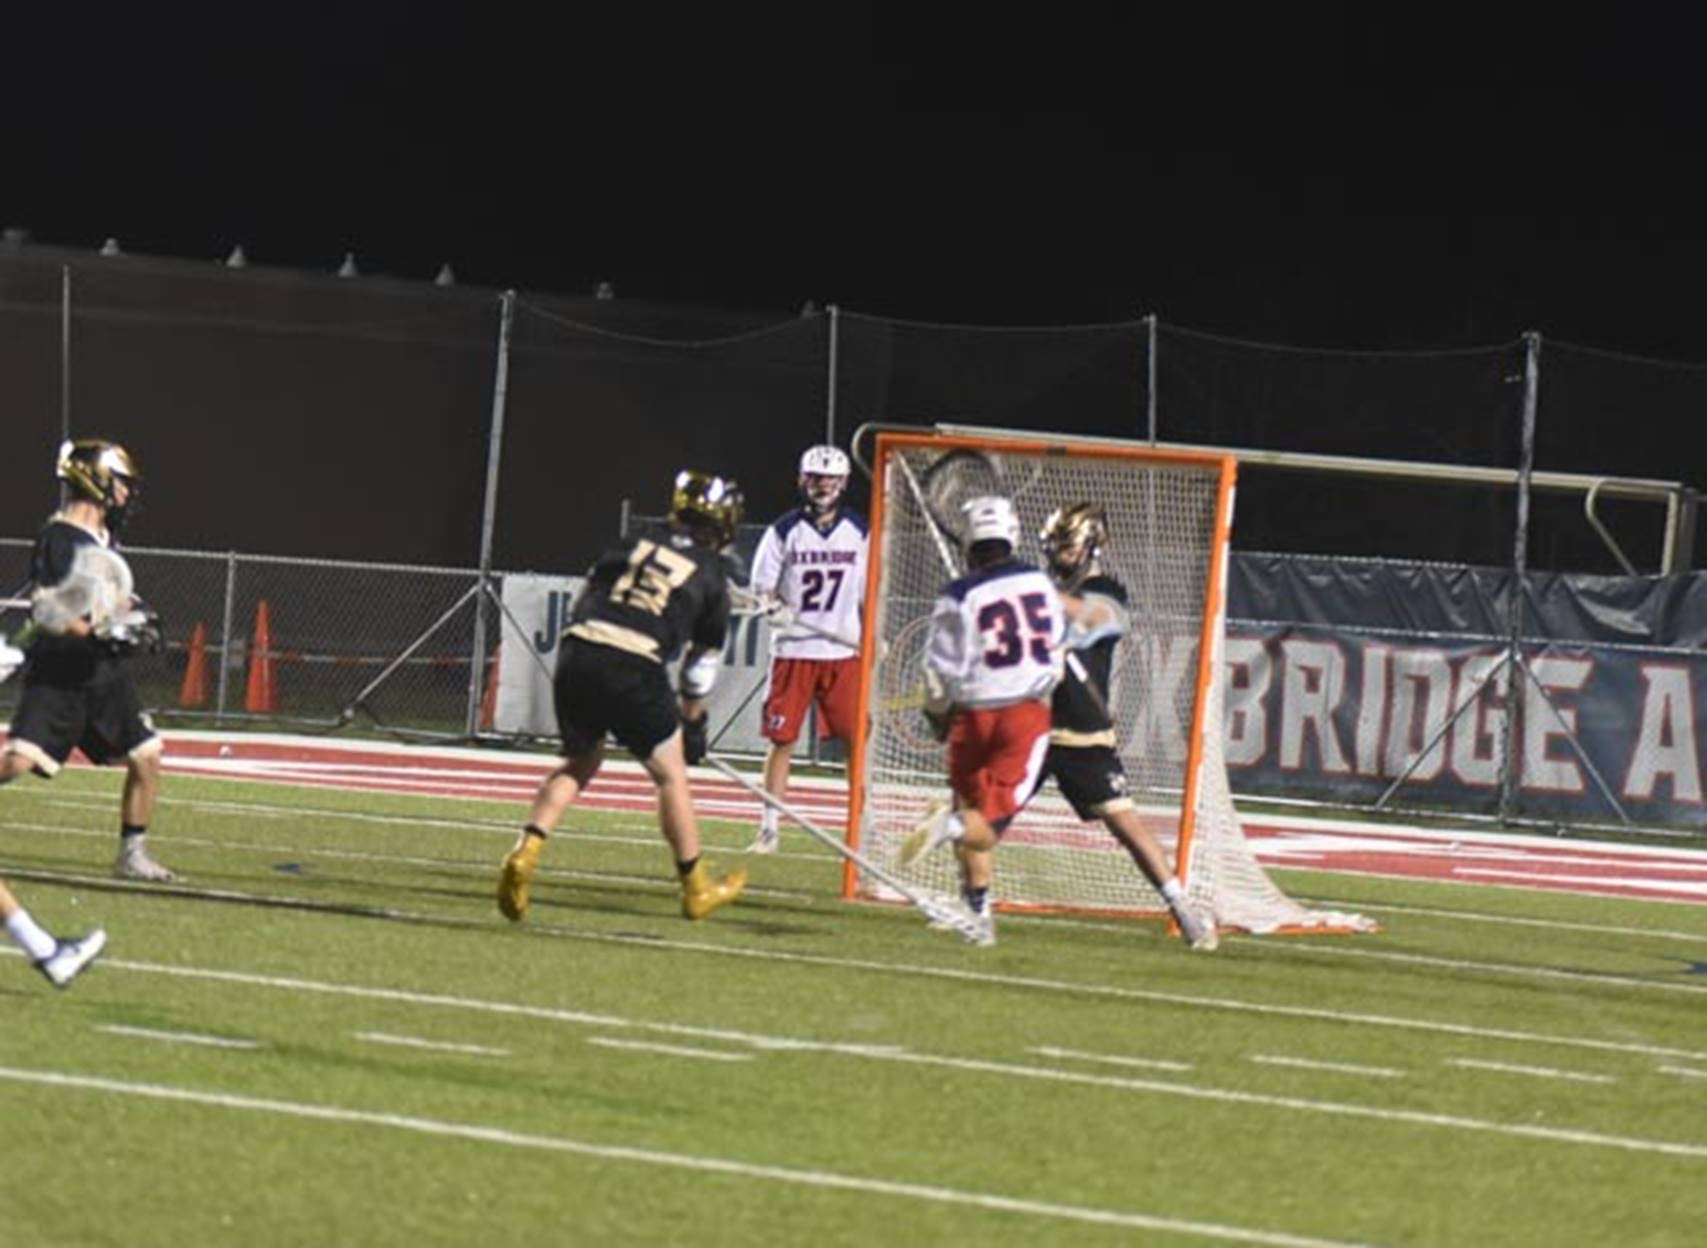 Weekly National Lacrosse Showcase Florida High School Media Poll for the Week Ending 4/8/18!